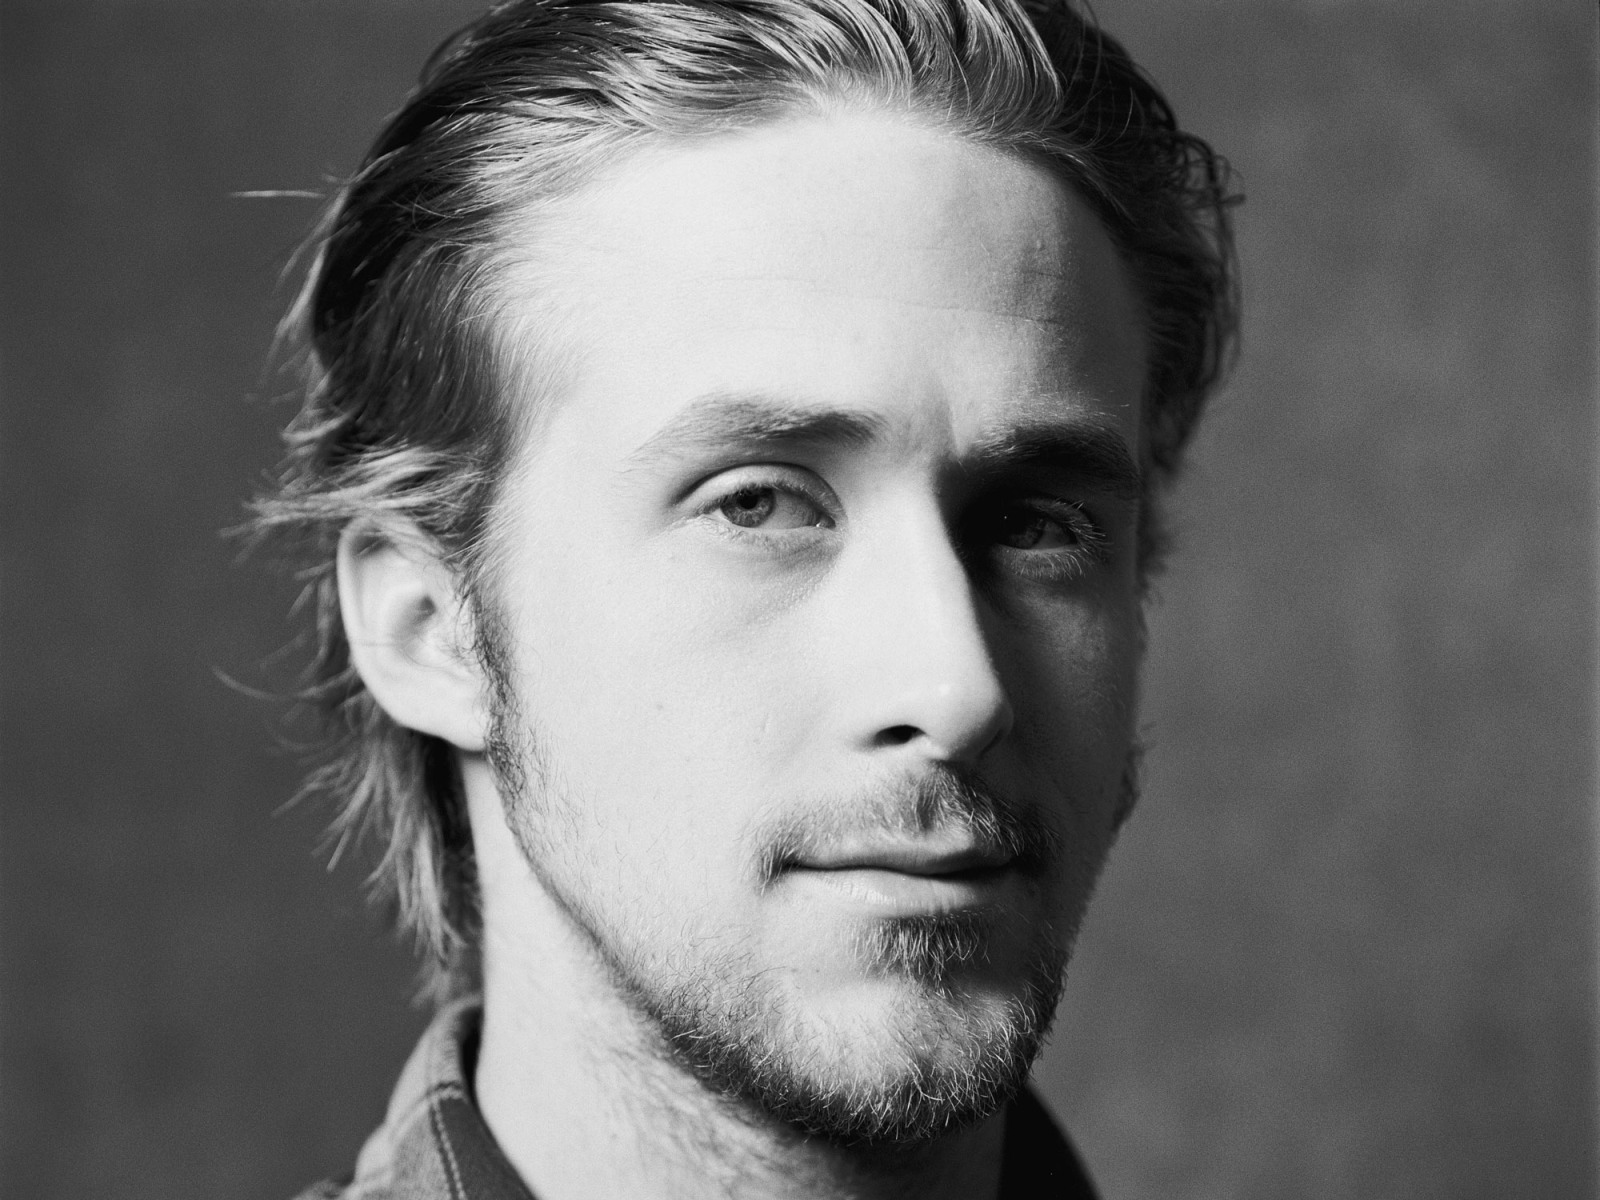 Ryan Gosling Wallpapers High Resolution and Quality Download 1600x1200